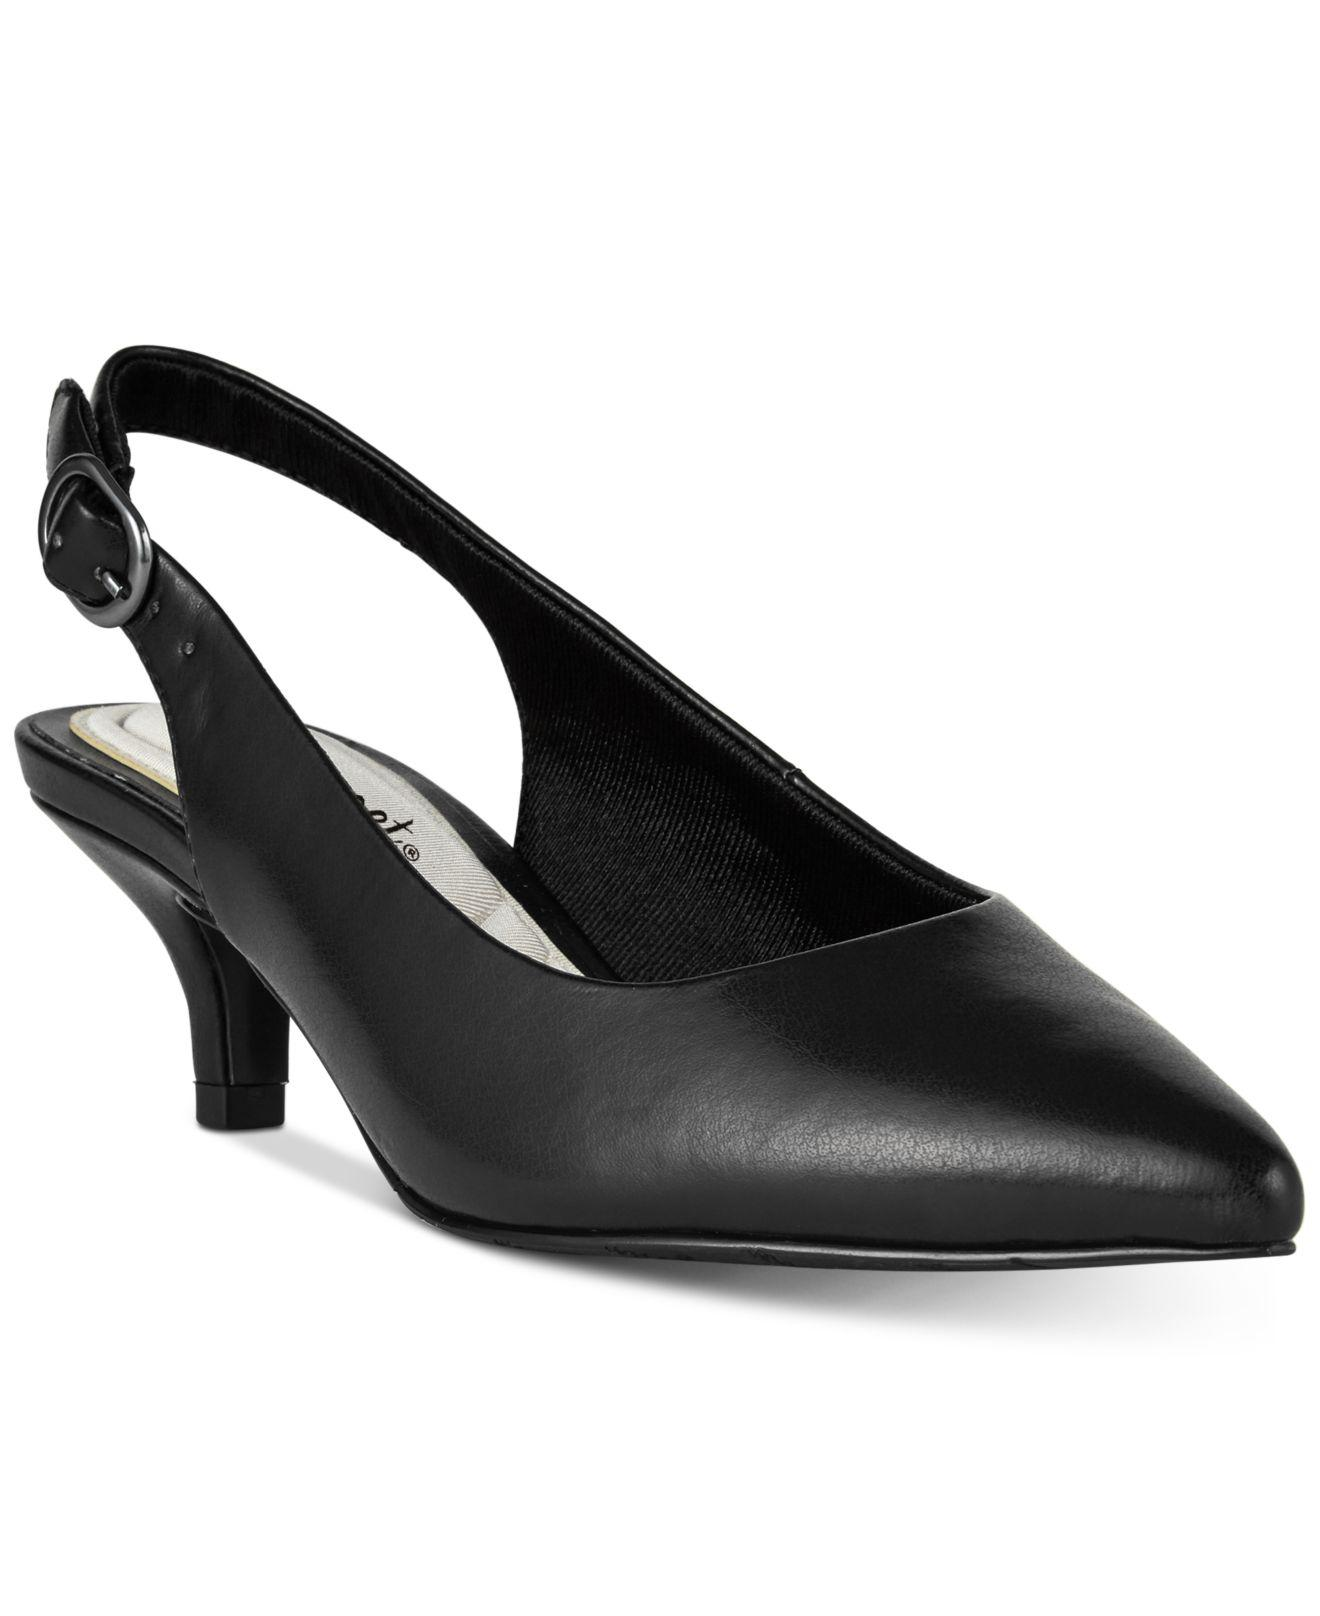 cbfcb4fa669 Lyst - Easy Street Faye Slingback Kitten-heel Pumps in Black